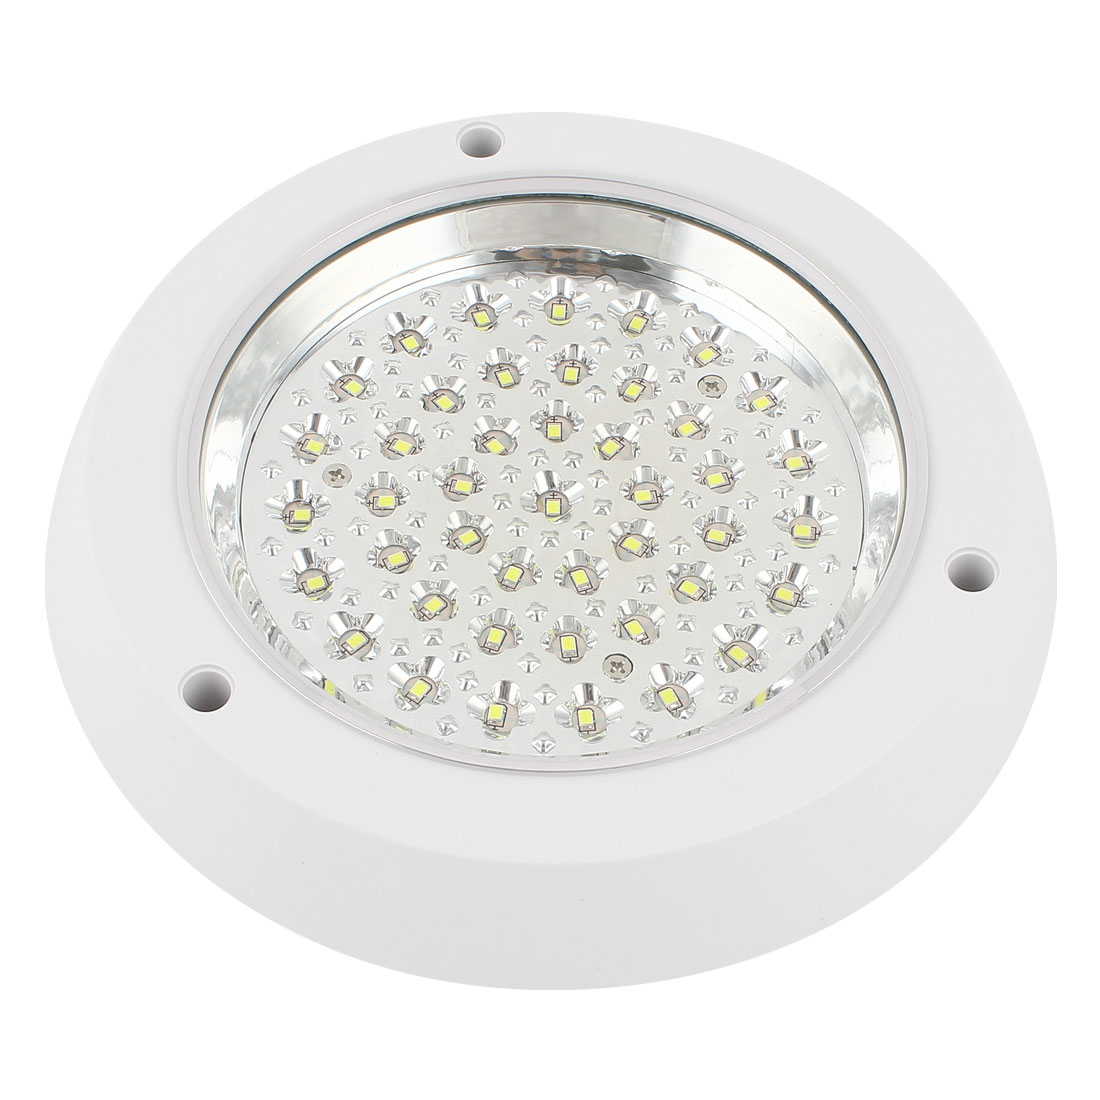 Surface Mount 54 LED White Ceiling Wall Downlight Round Panel Lamp Bulb 6W AC 220V 19cm